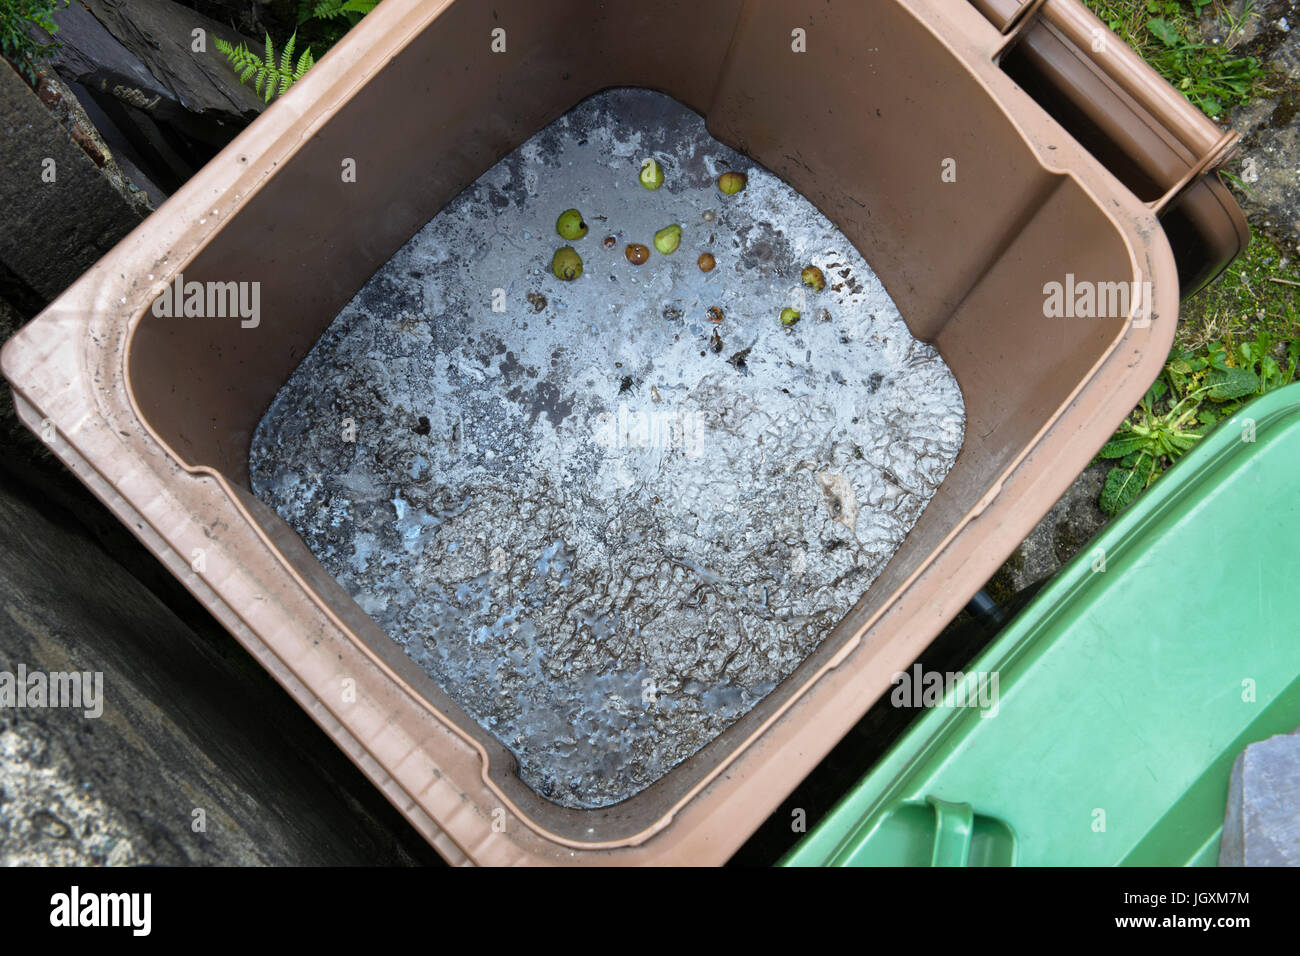 Disposing of perennial weeds by drowning in a green waste recycling bin. After three months the surface has covered - Stock Image